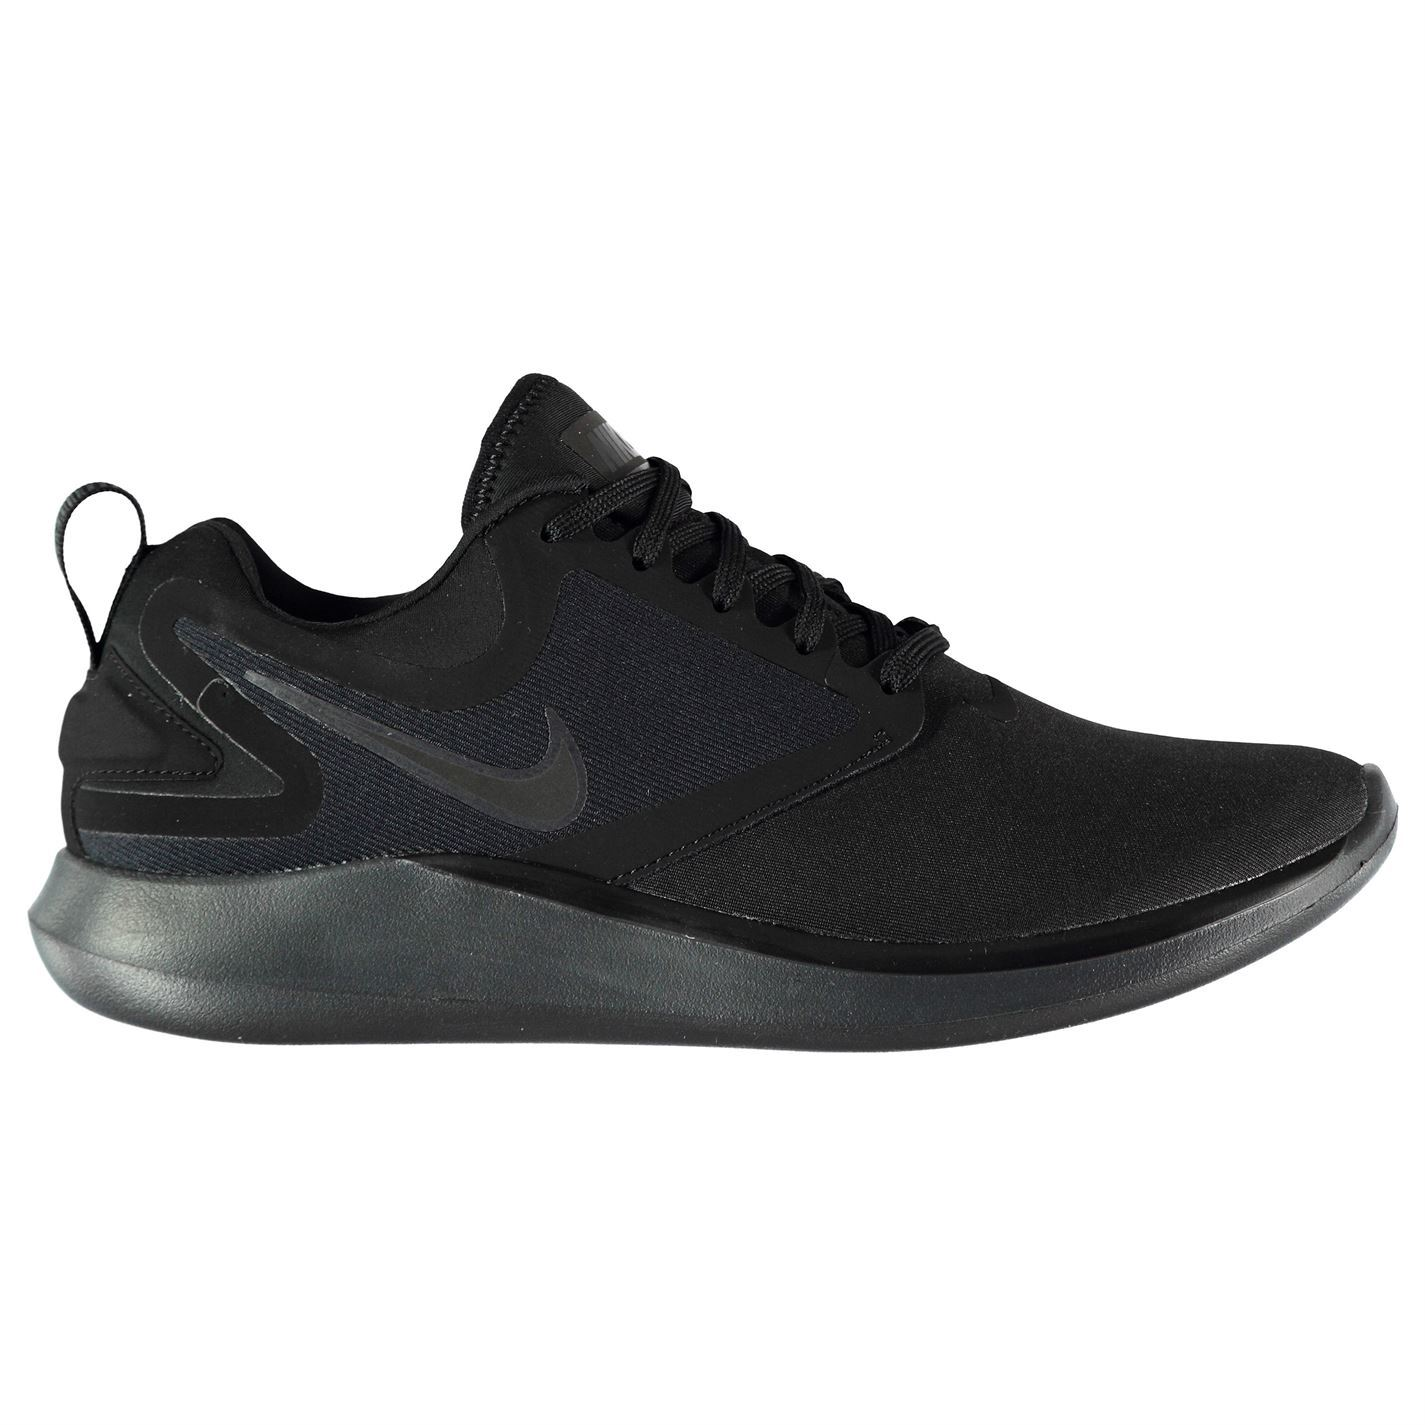 04c52d68567b ... Nike Lunar Solo Running Shoes Mens Black Jogging Trainers Sneakers ...